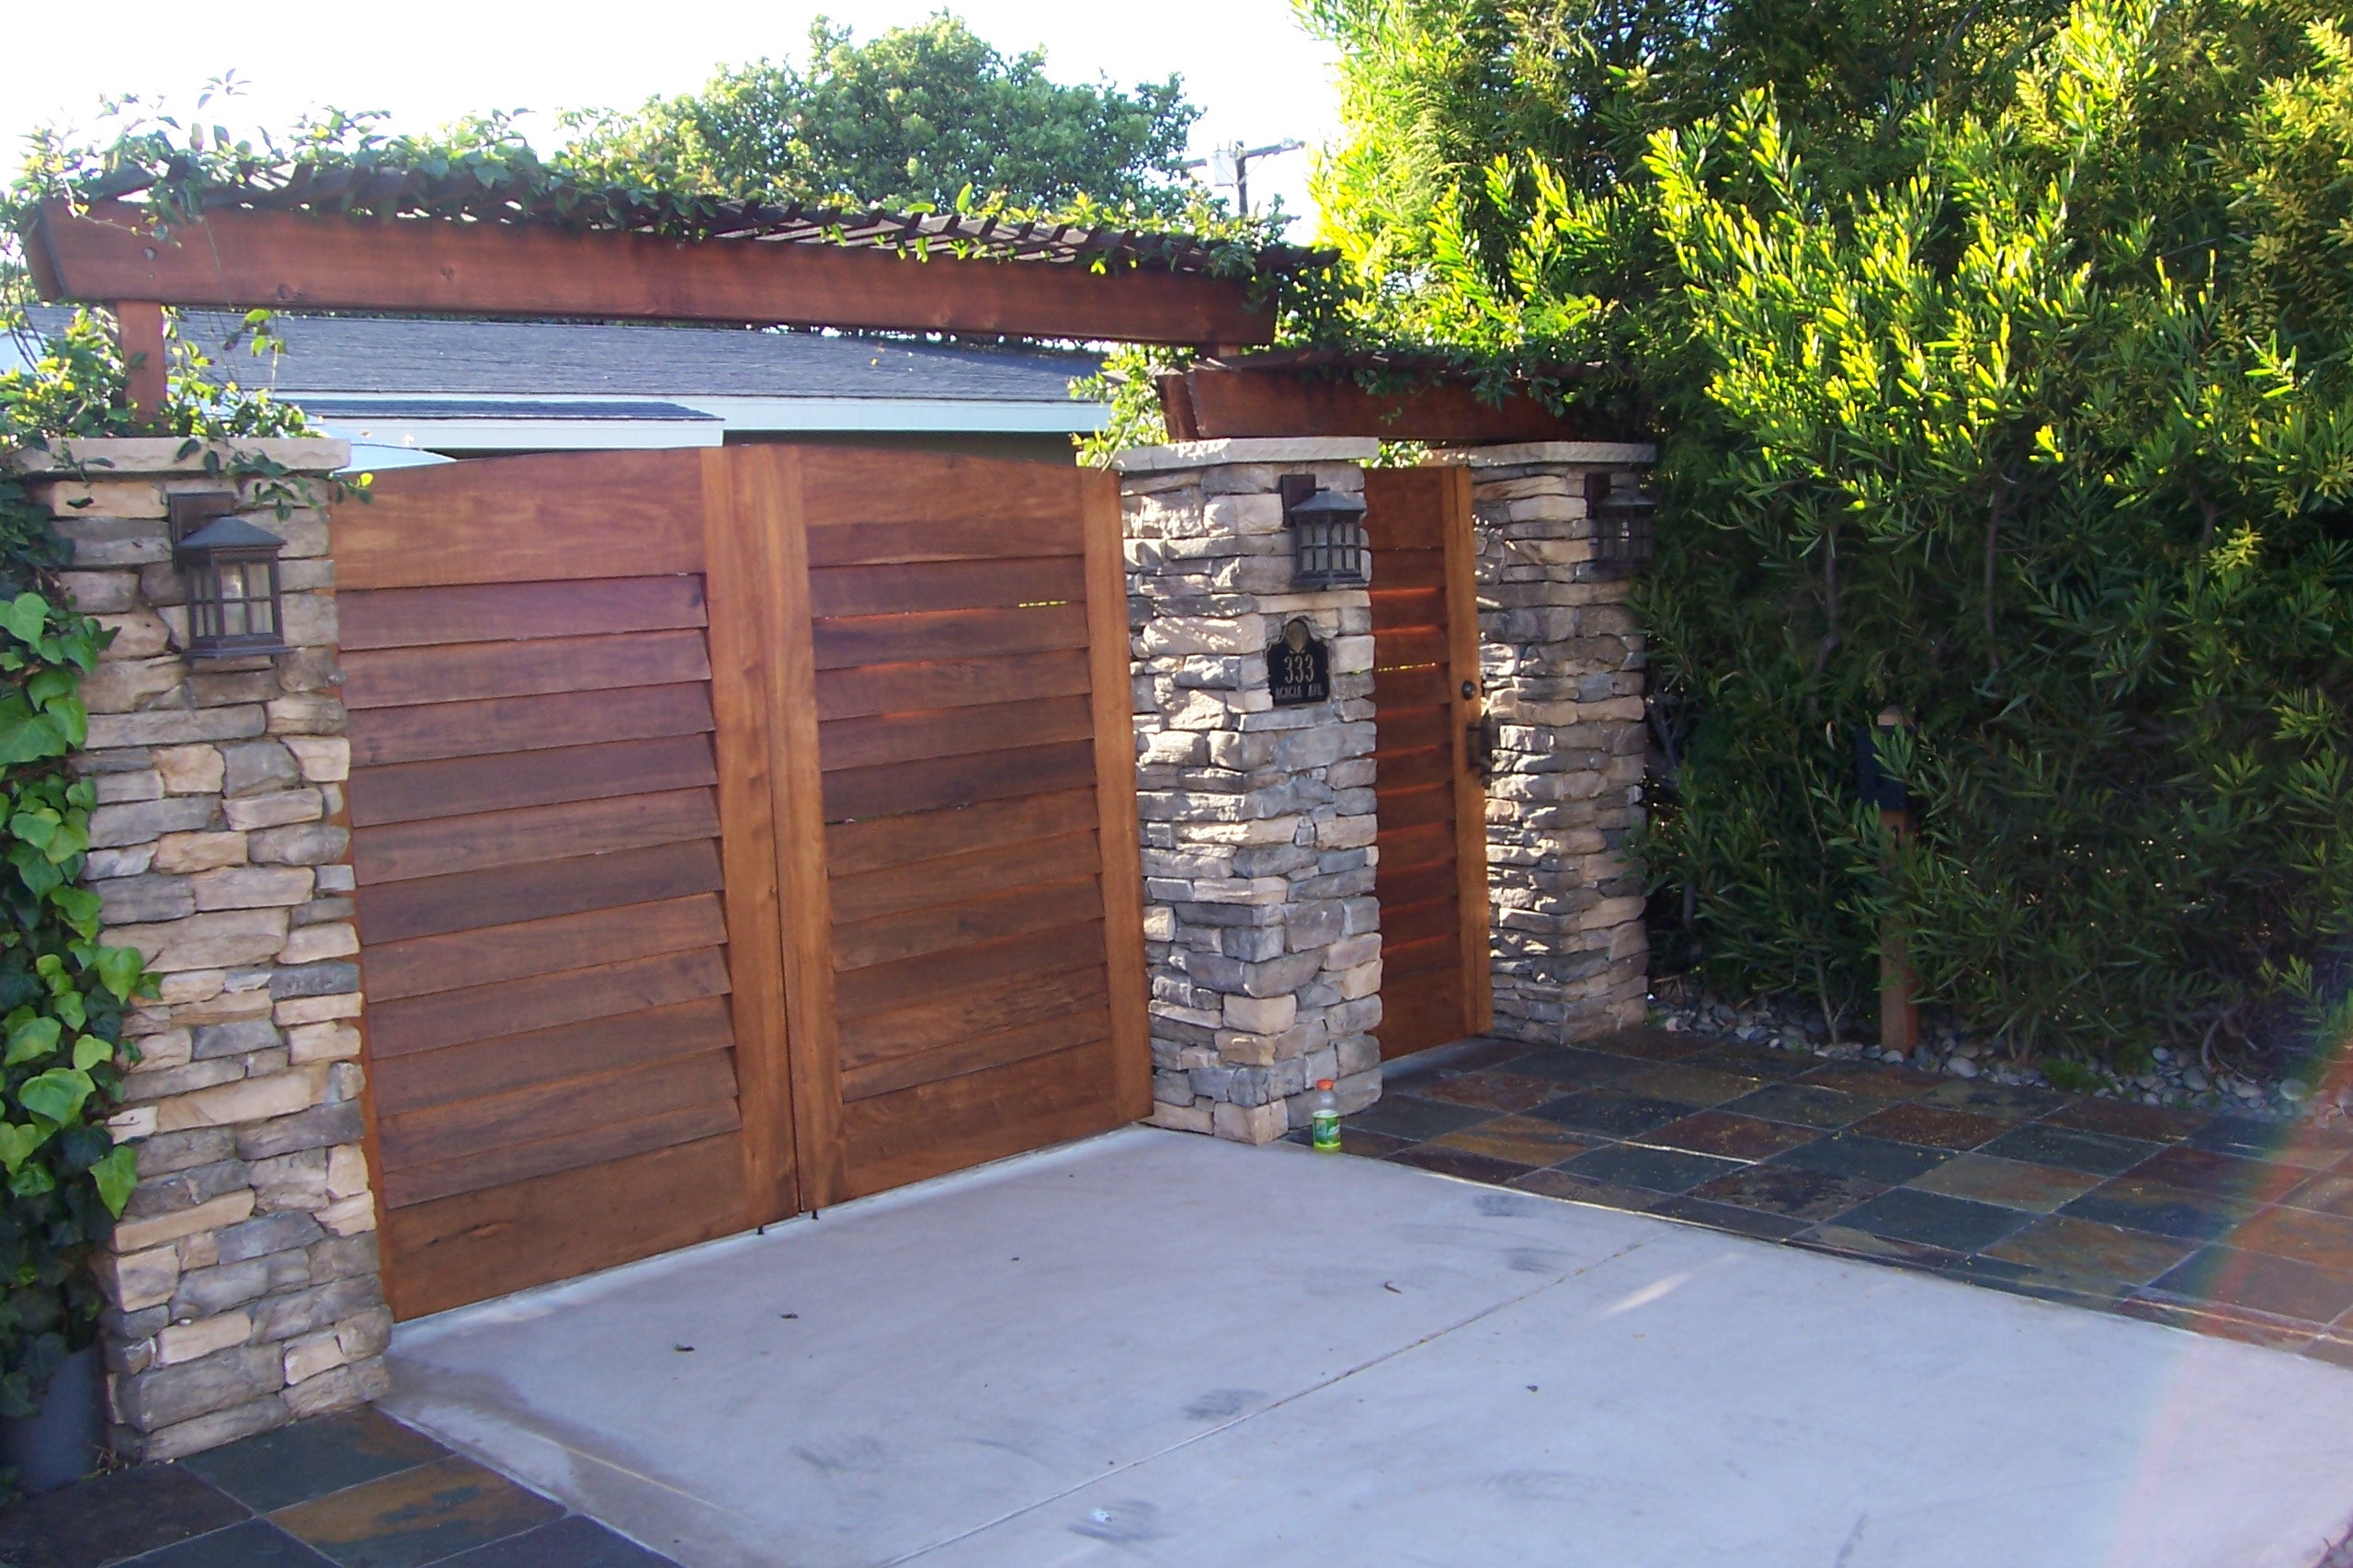 Fences & Gates Designs Creative fences gates and enclosures in san diego part 2 gate design with wooden driveway and people gates workwithnaturefo